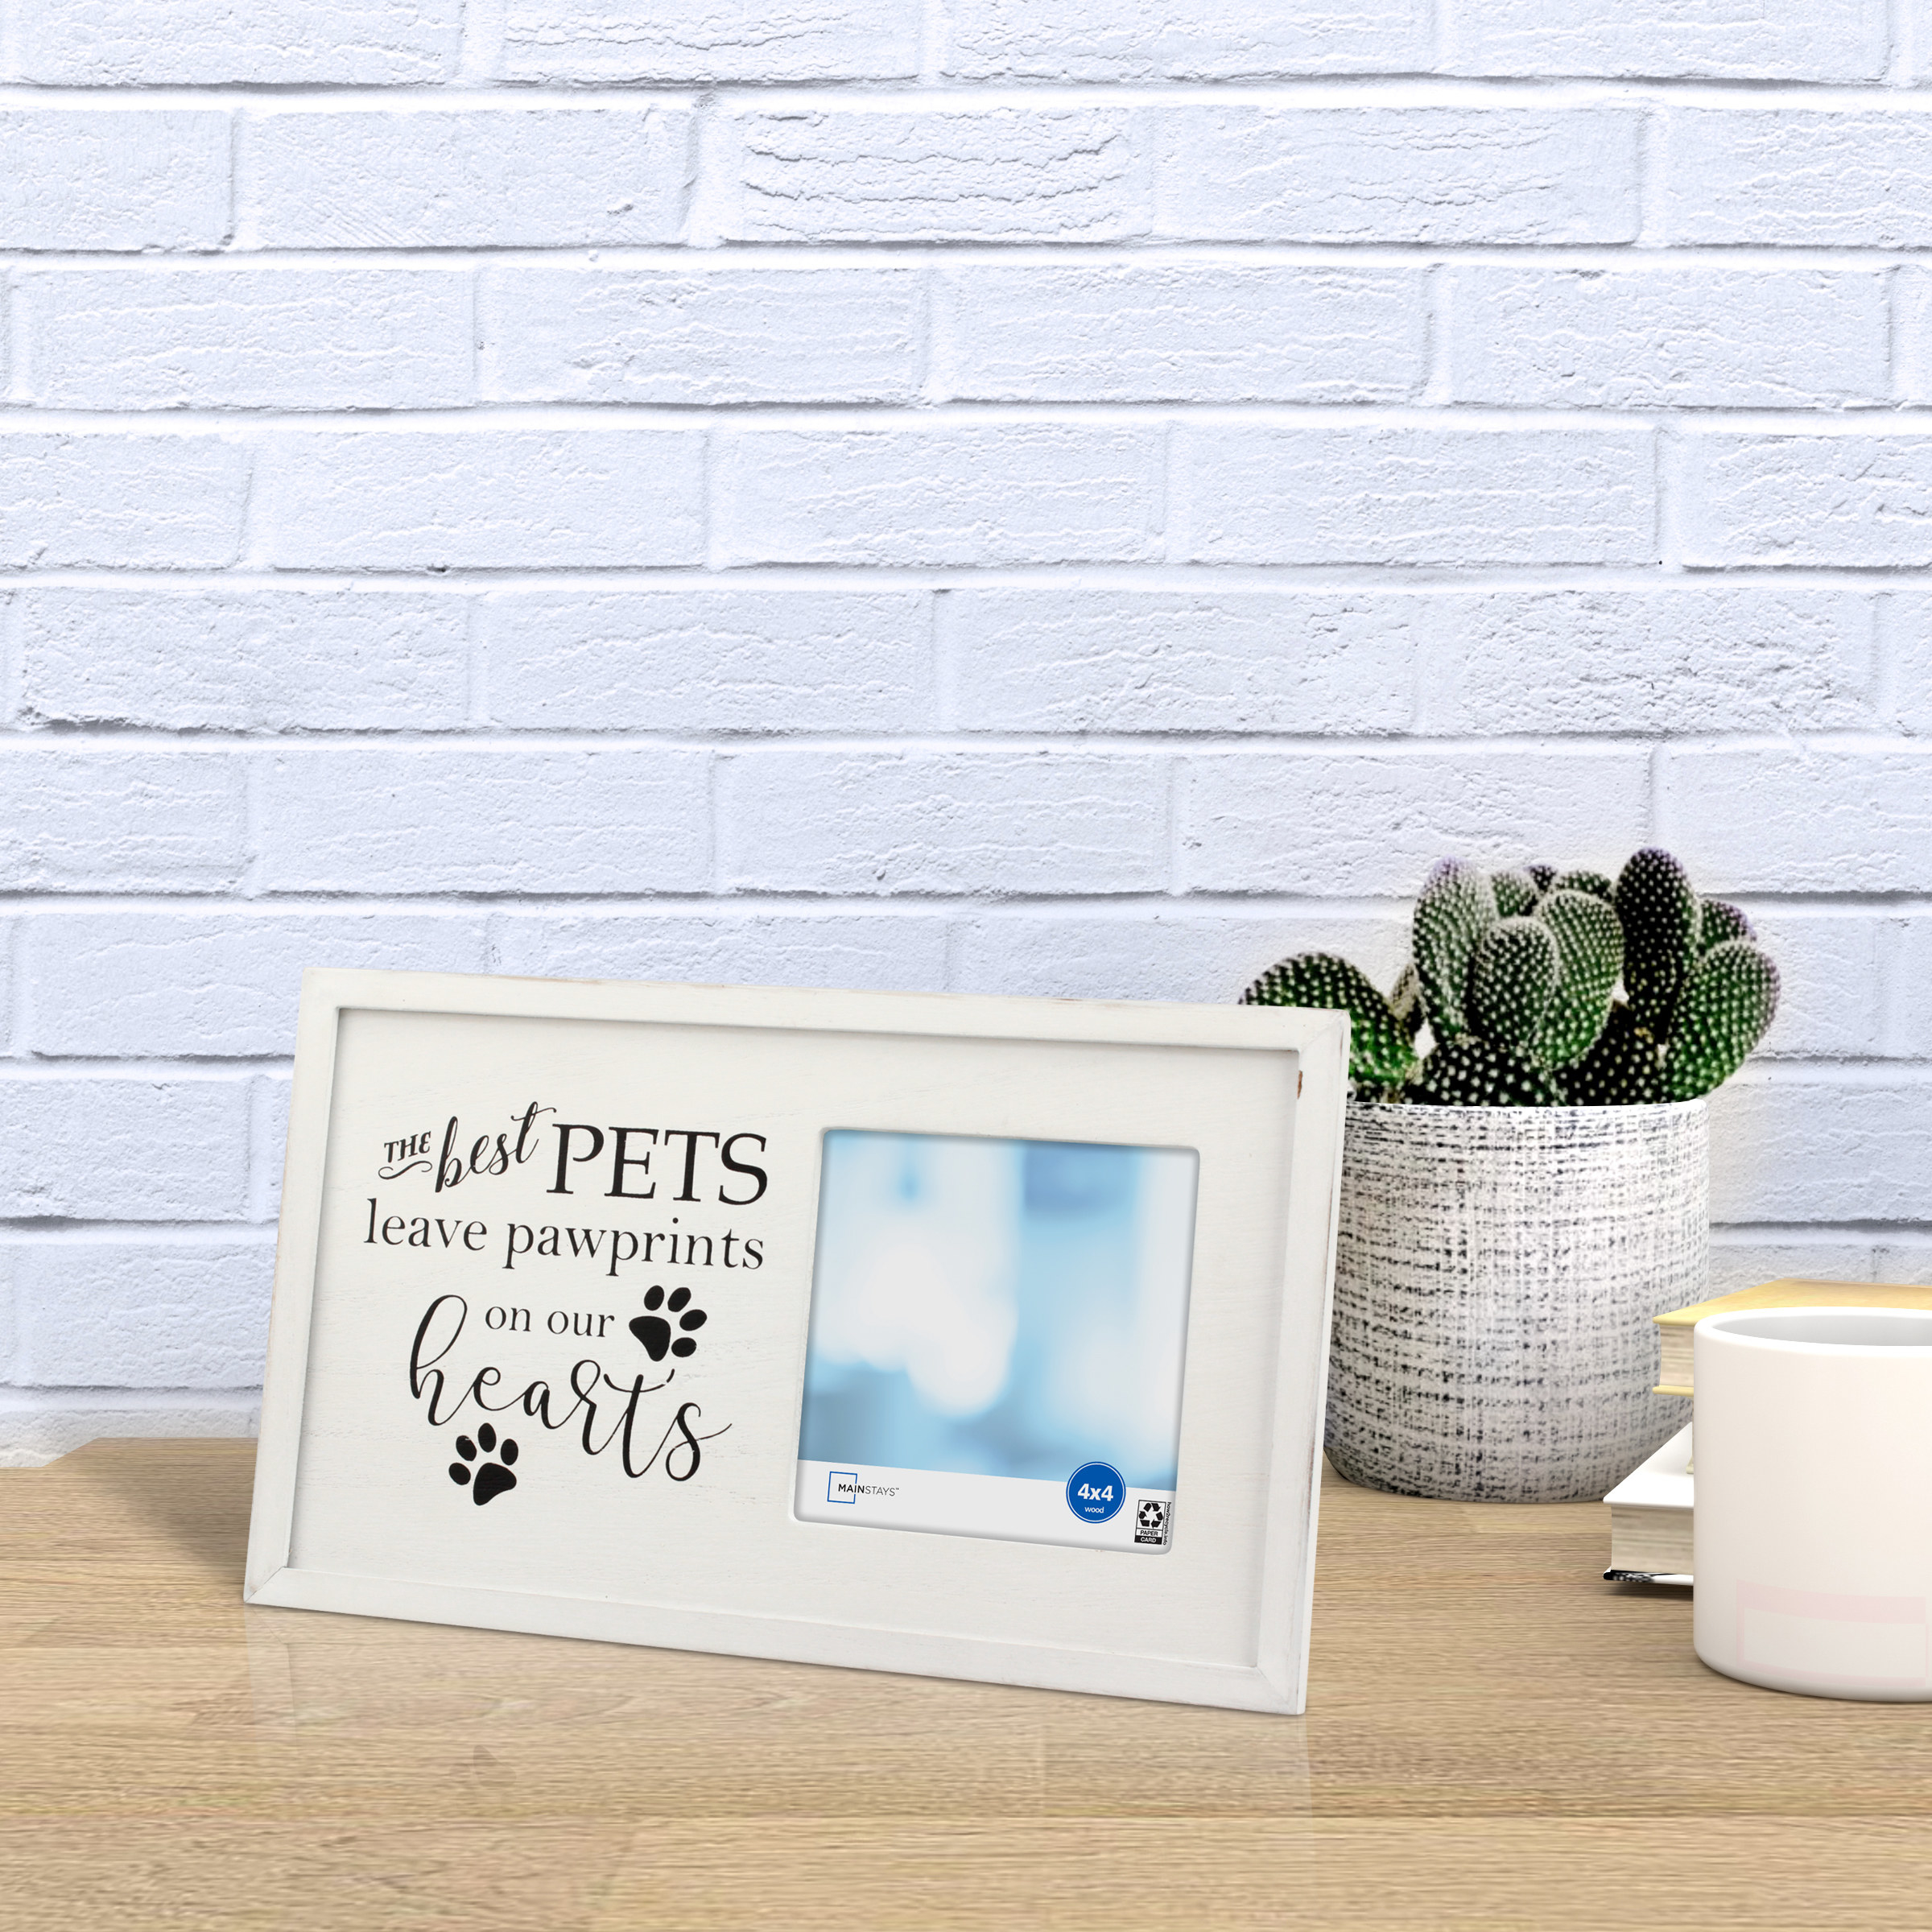 The photo frame on a table